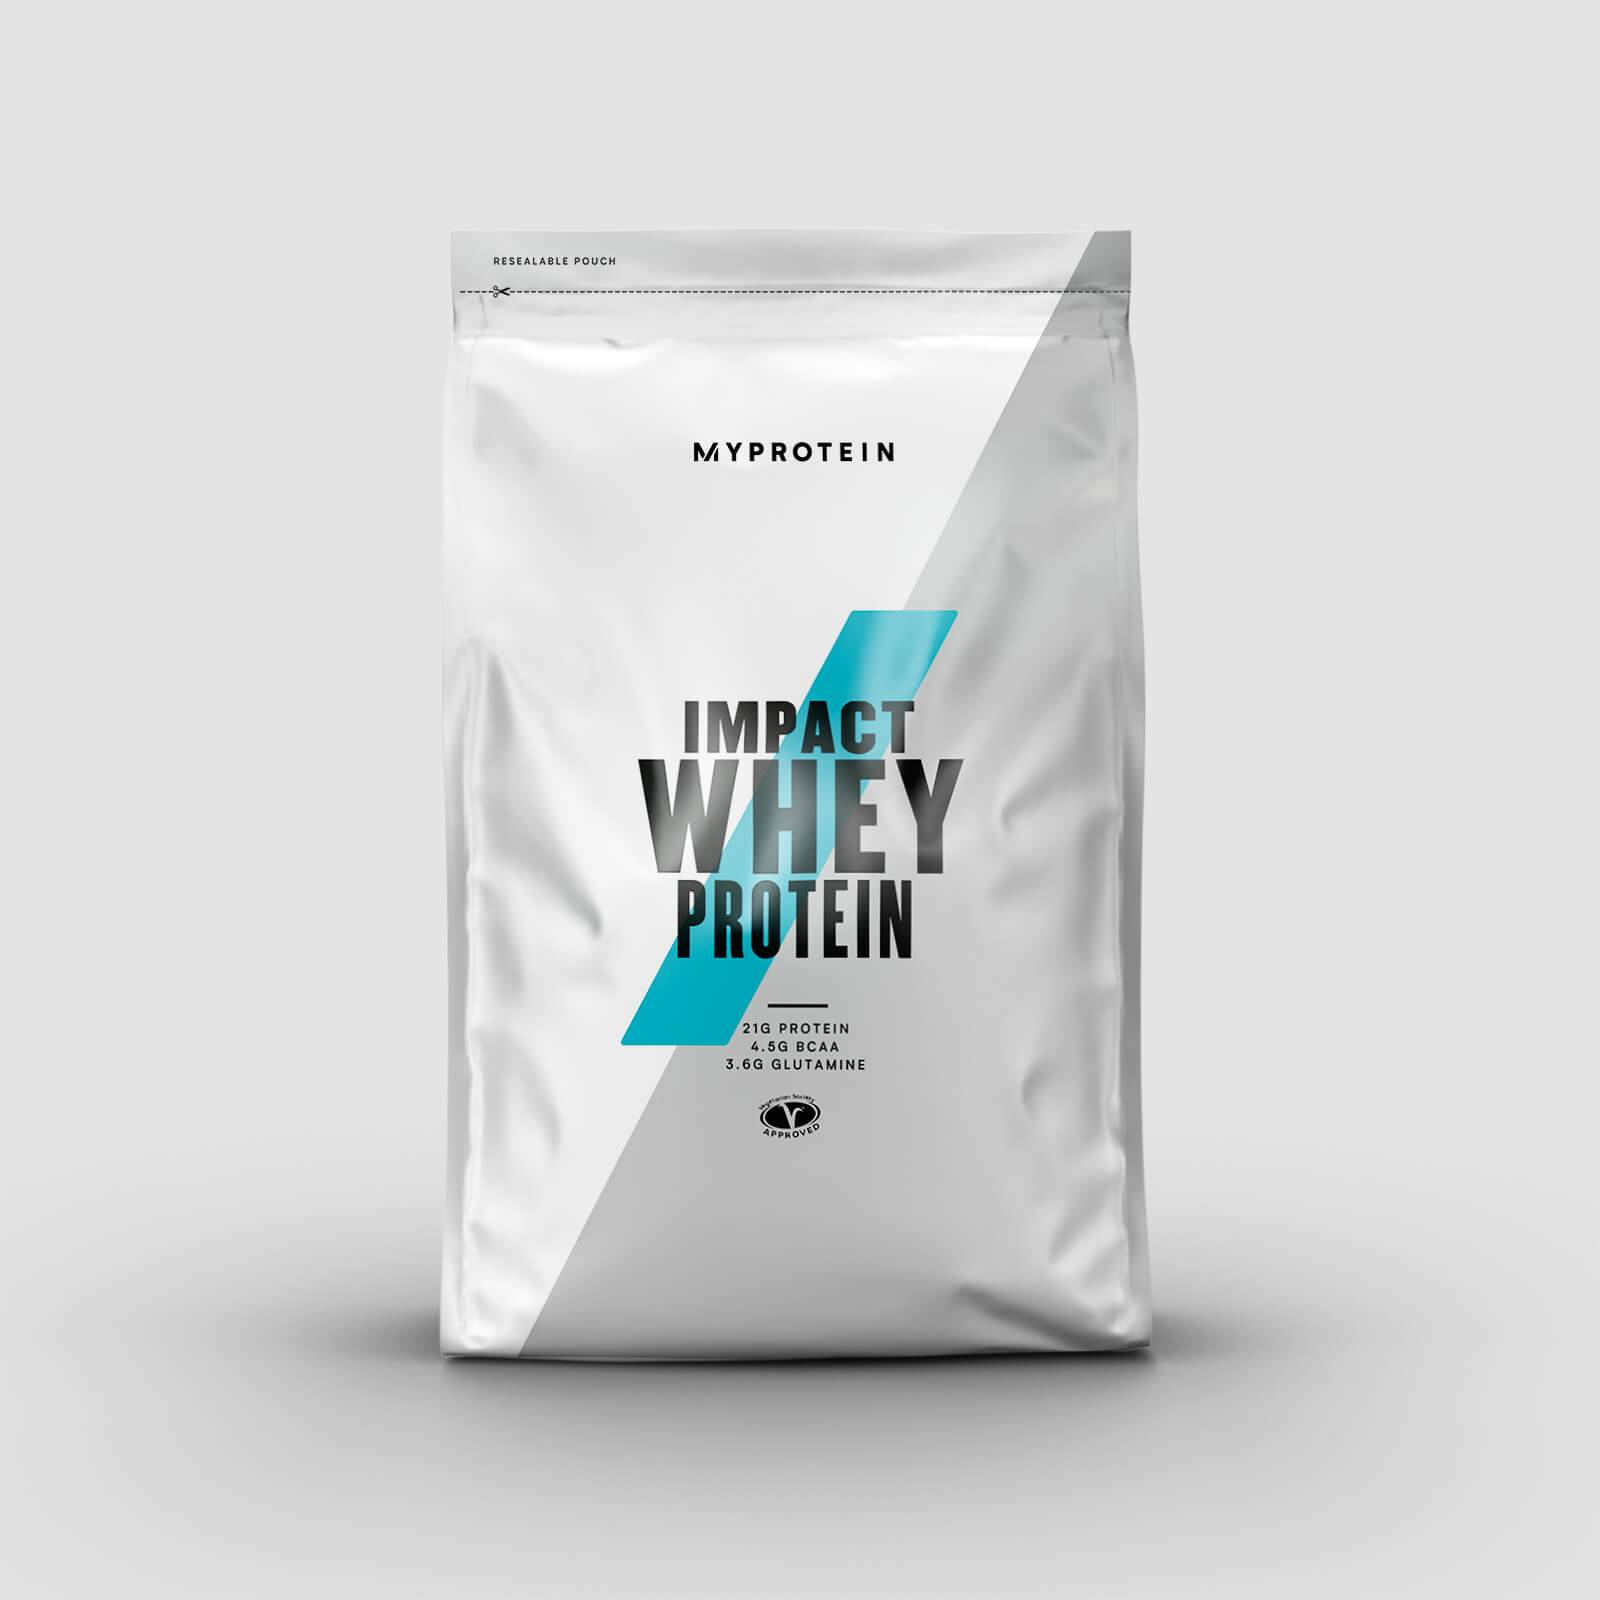 Myprotein Impact Whey Protein - 1kg - Rocky Road - New and Improved